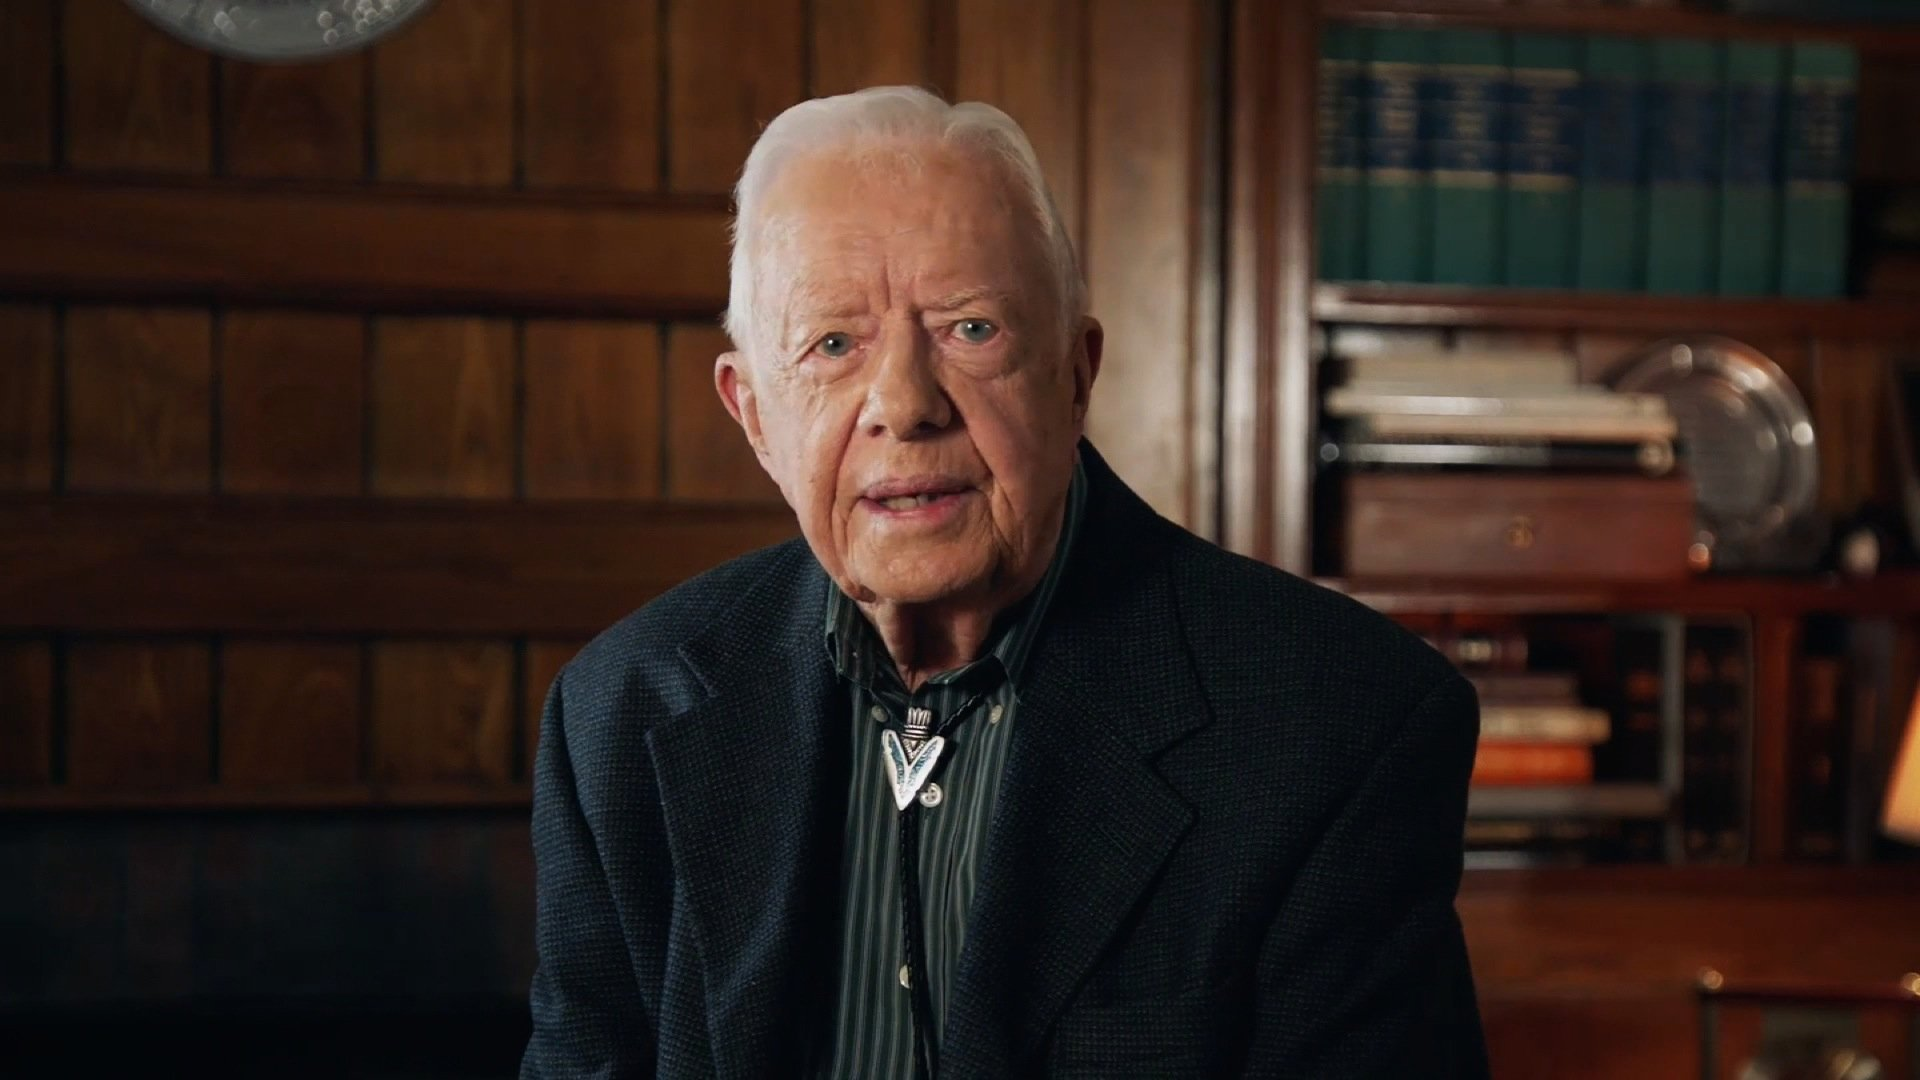 All five living former US presidents-- former Presidents Jimmy Carter, Bill Clinton, George H.W. Bush, George Bush and Barack Obama -- appeared in a video and asked Americans to respond to the devastation wrought by the hurricane.